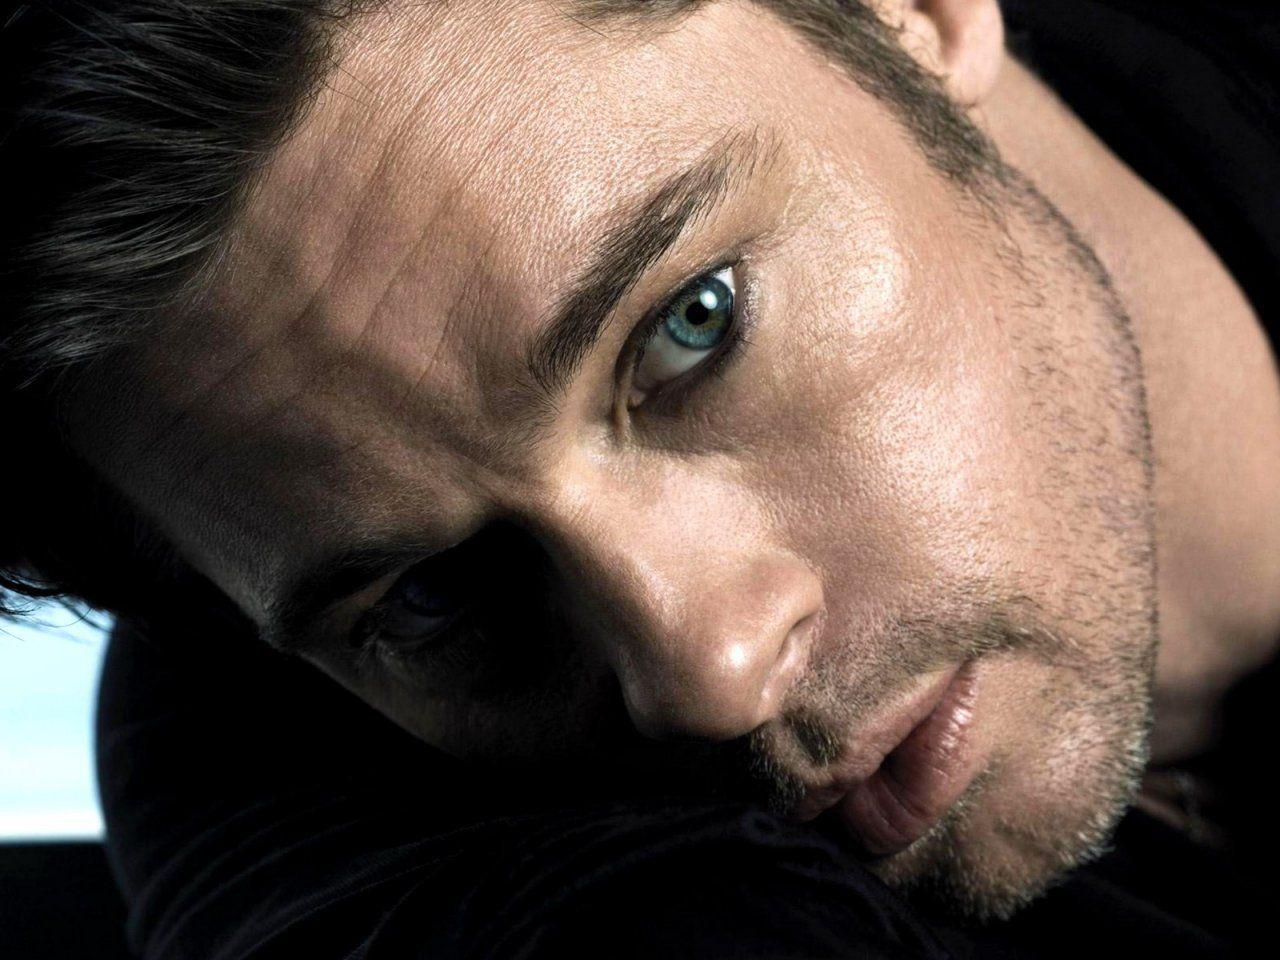 Brad Pitt Wallpaper 10689 1280x960 px ~ FreeWallSource.